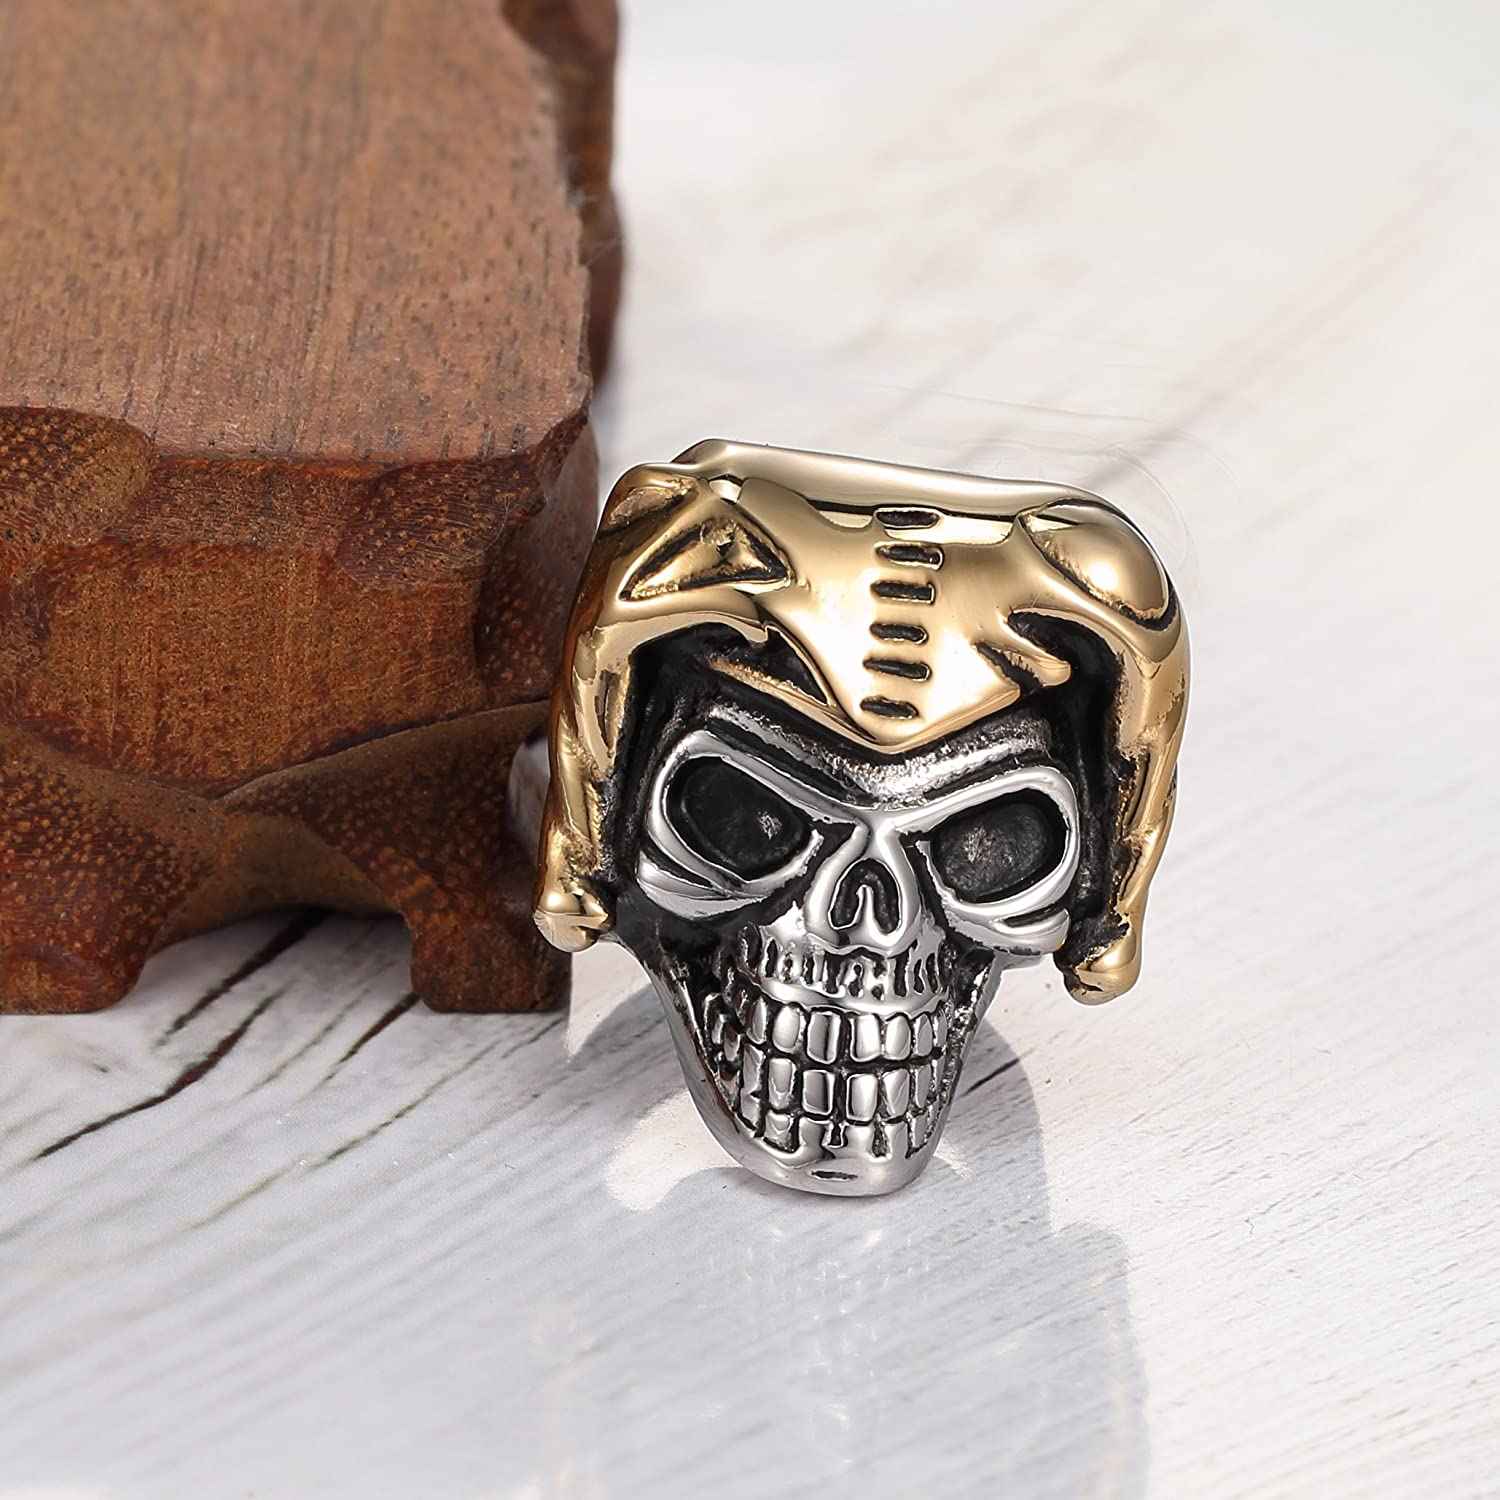 Silver Black Gold 14k Gold Plated Vintage 316l Stainless Steel Personality Alien Skull Biker Mens Ring